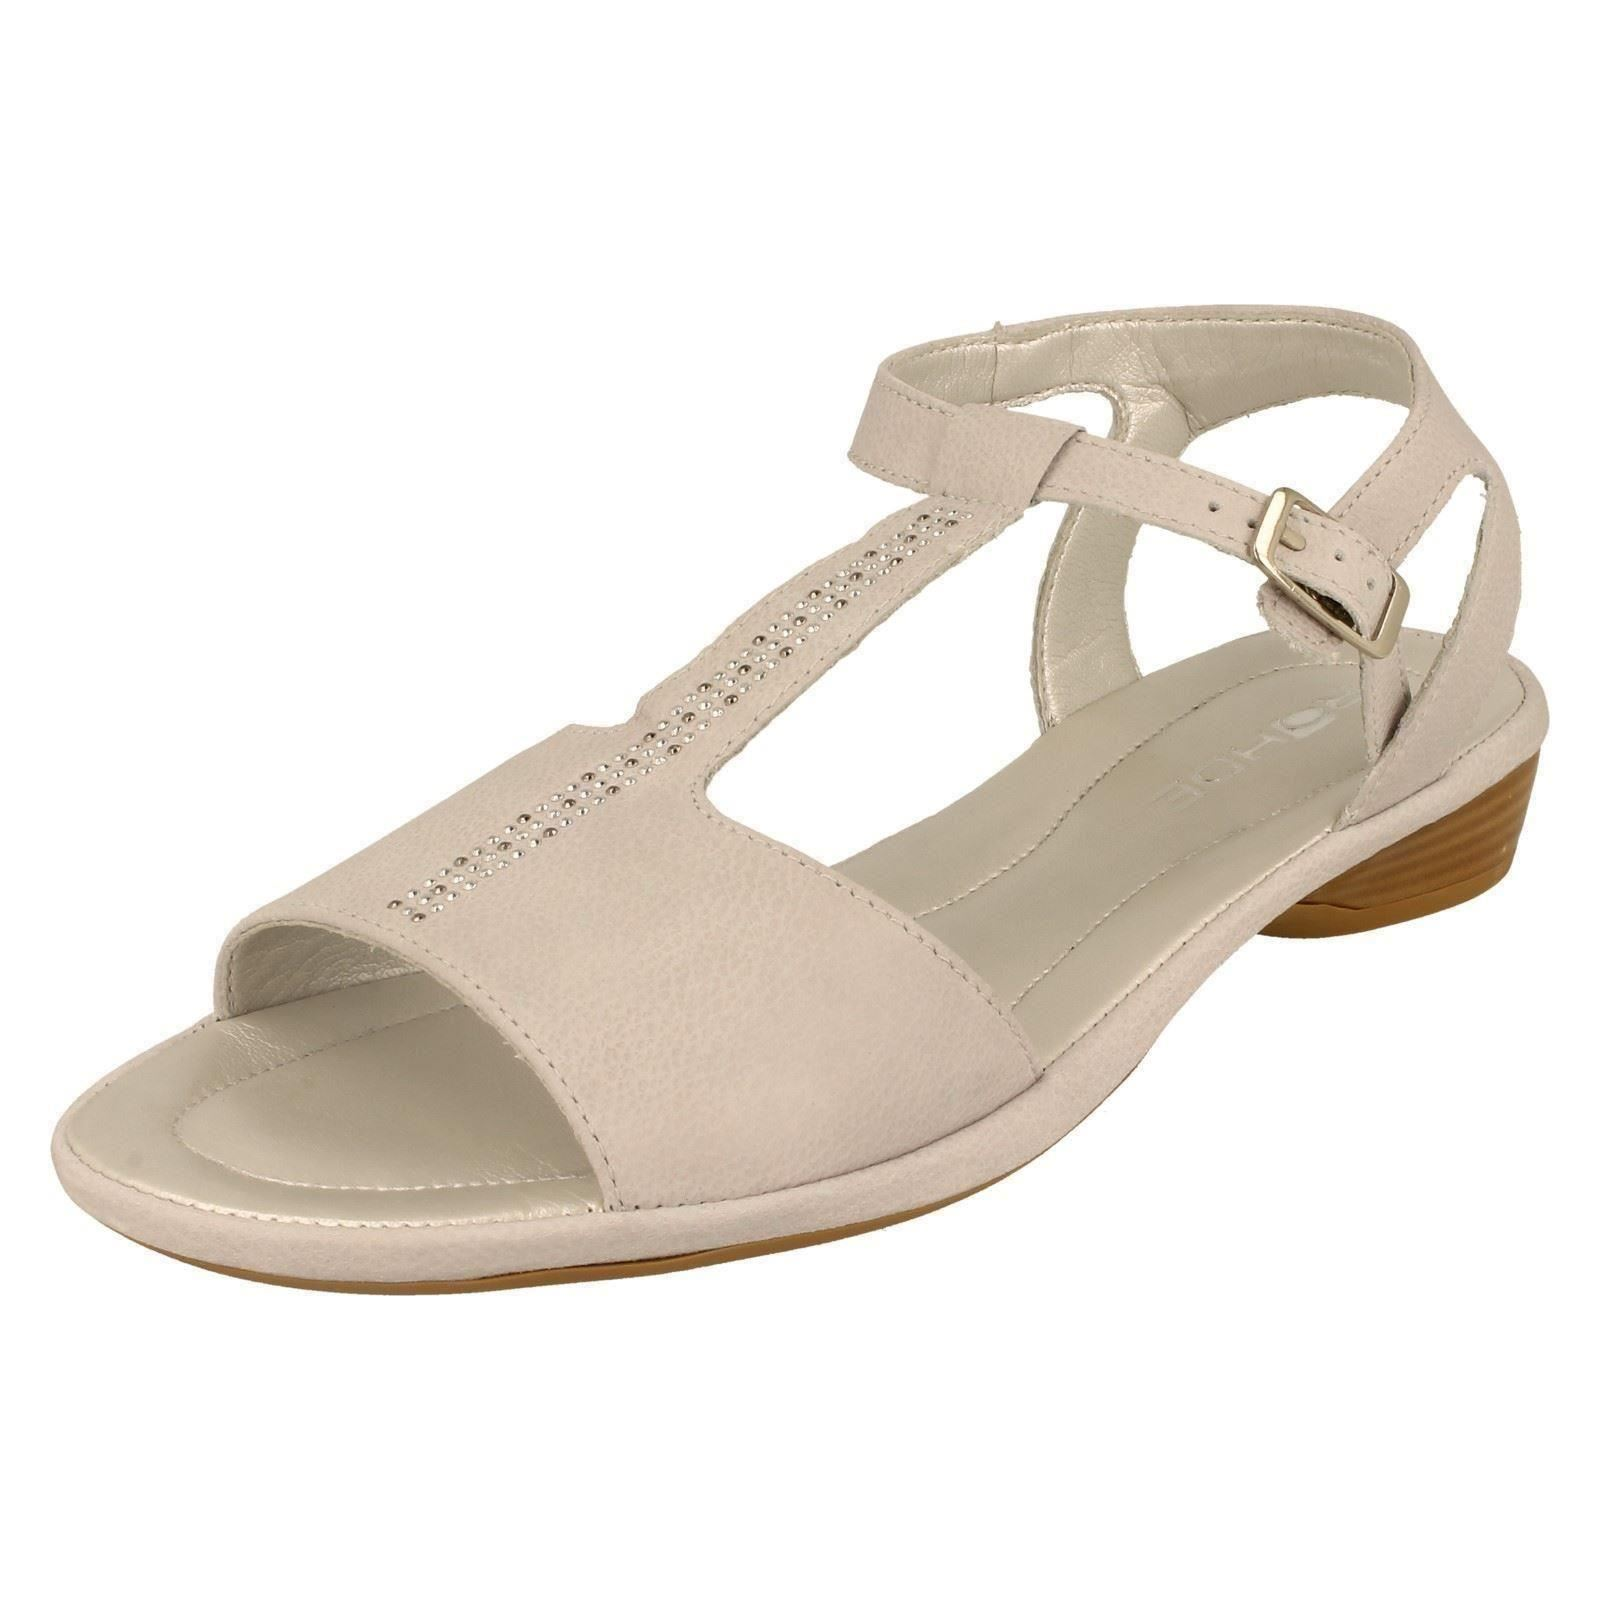 Rohde Sandals w Ladies Style The Silver 5279 kuOZlwPXiT